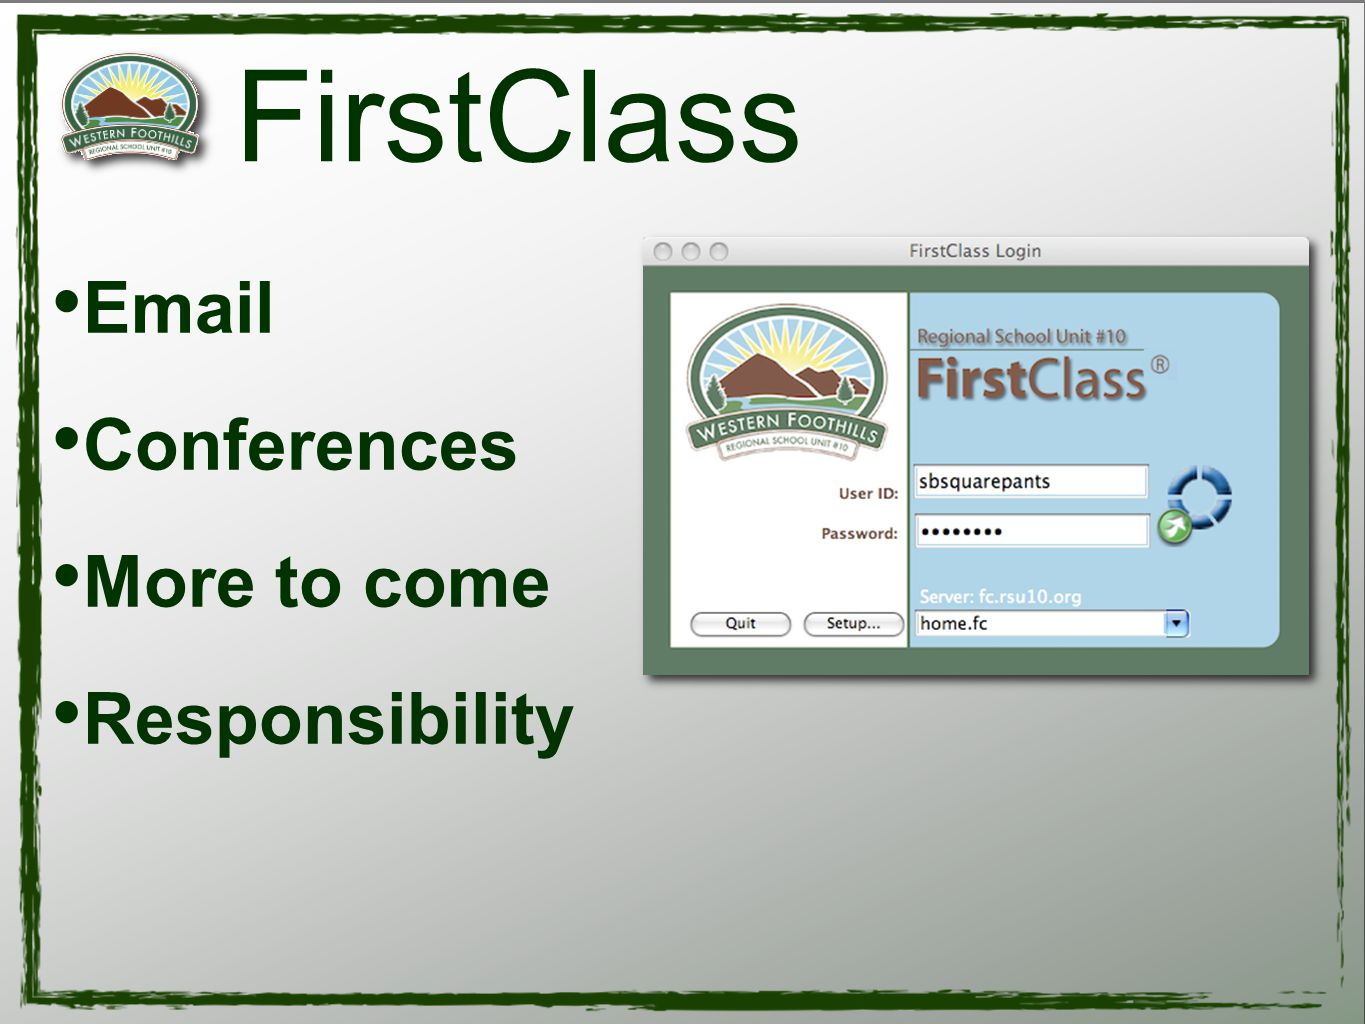 FirstClass Email Conferences More to come Responsibility